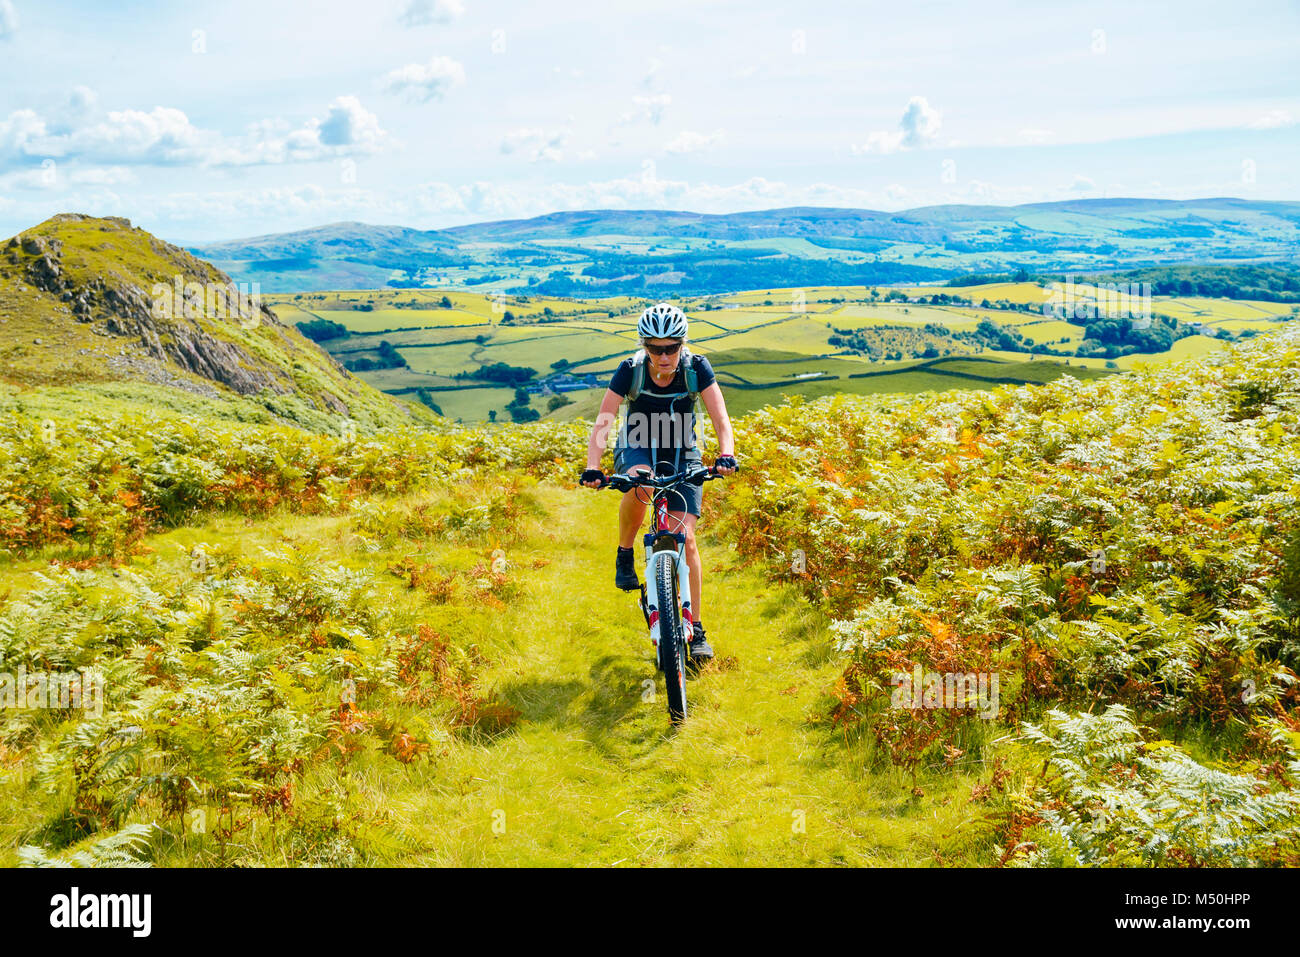 Female mountain biker on trail skirting Great Stickle above the Duddon Valley in the English Lake District - Stock Image